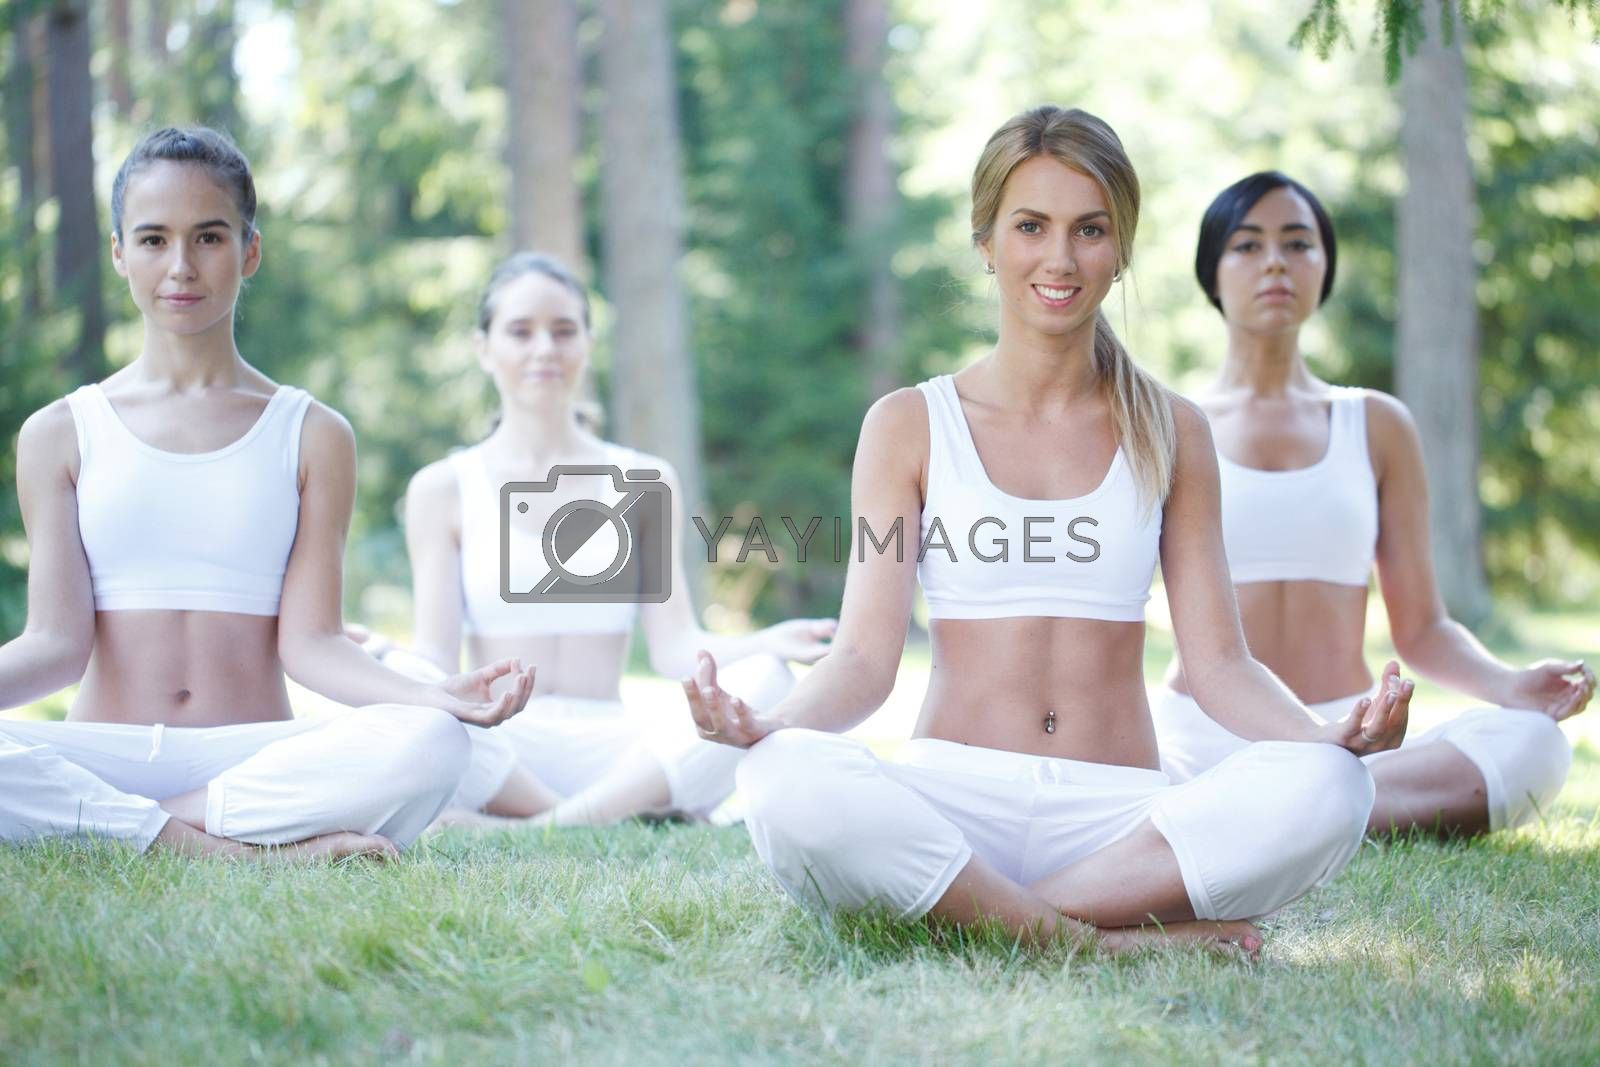 Women in white sportswear sitting in lotus position during group yoga training class at park